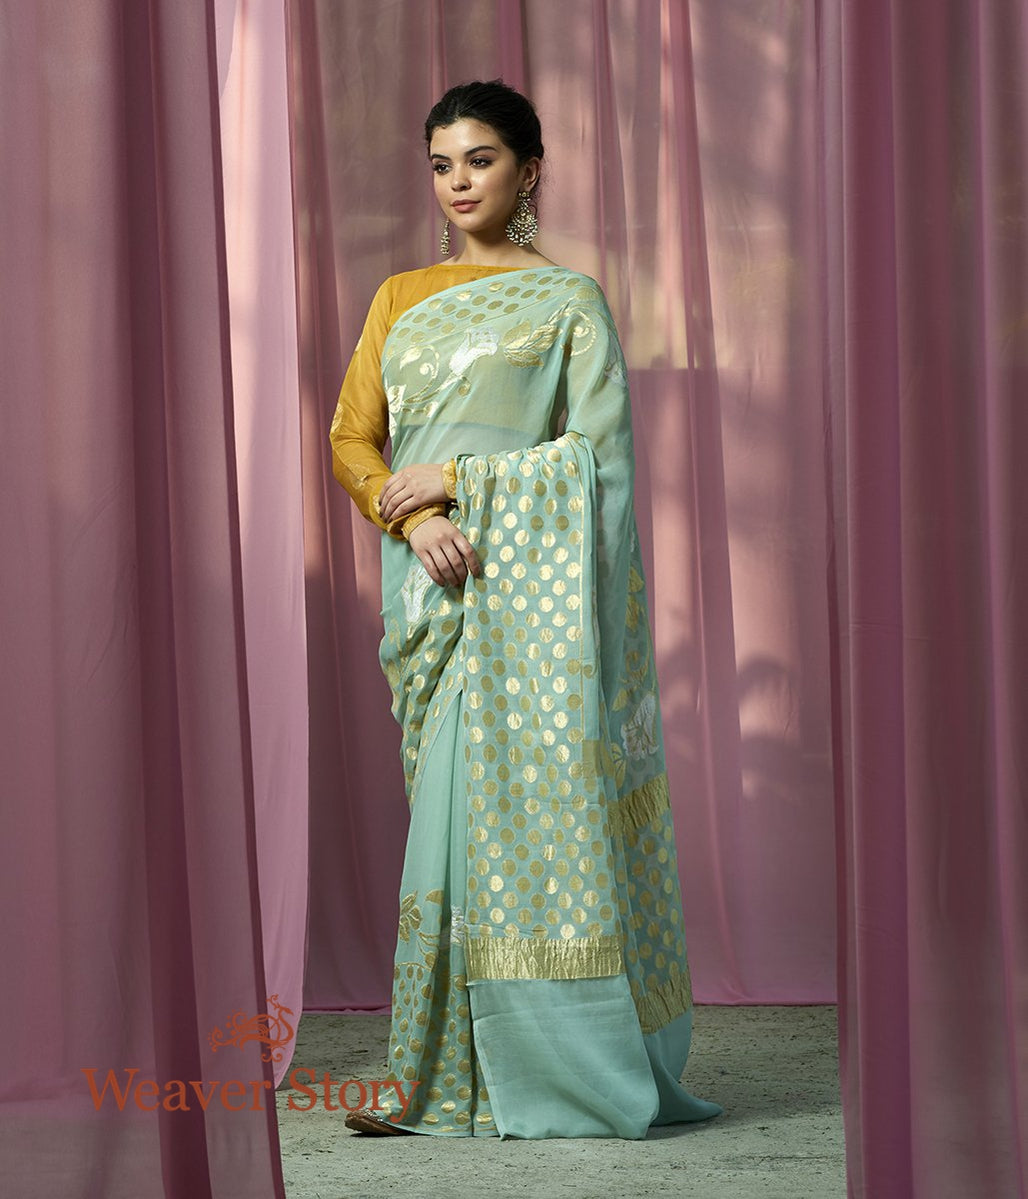 Handwoven Light Blue Sona Rupa Banarasi Georgette Saree